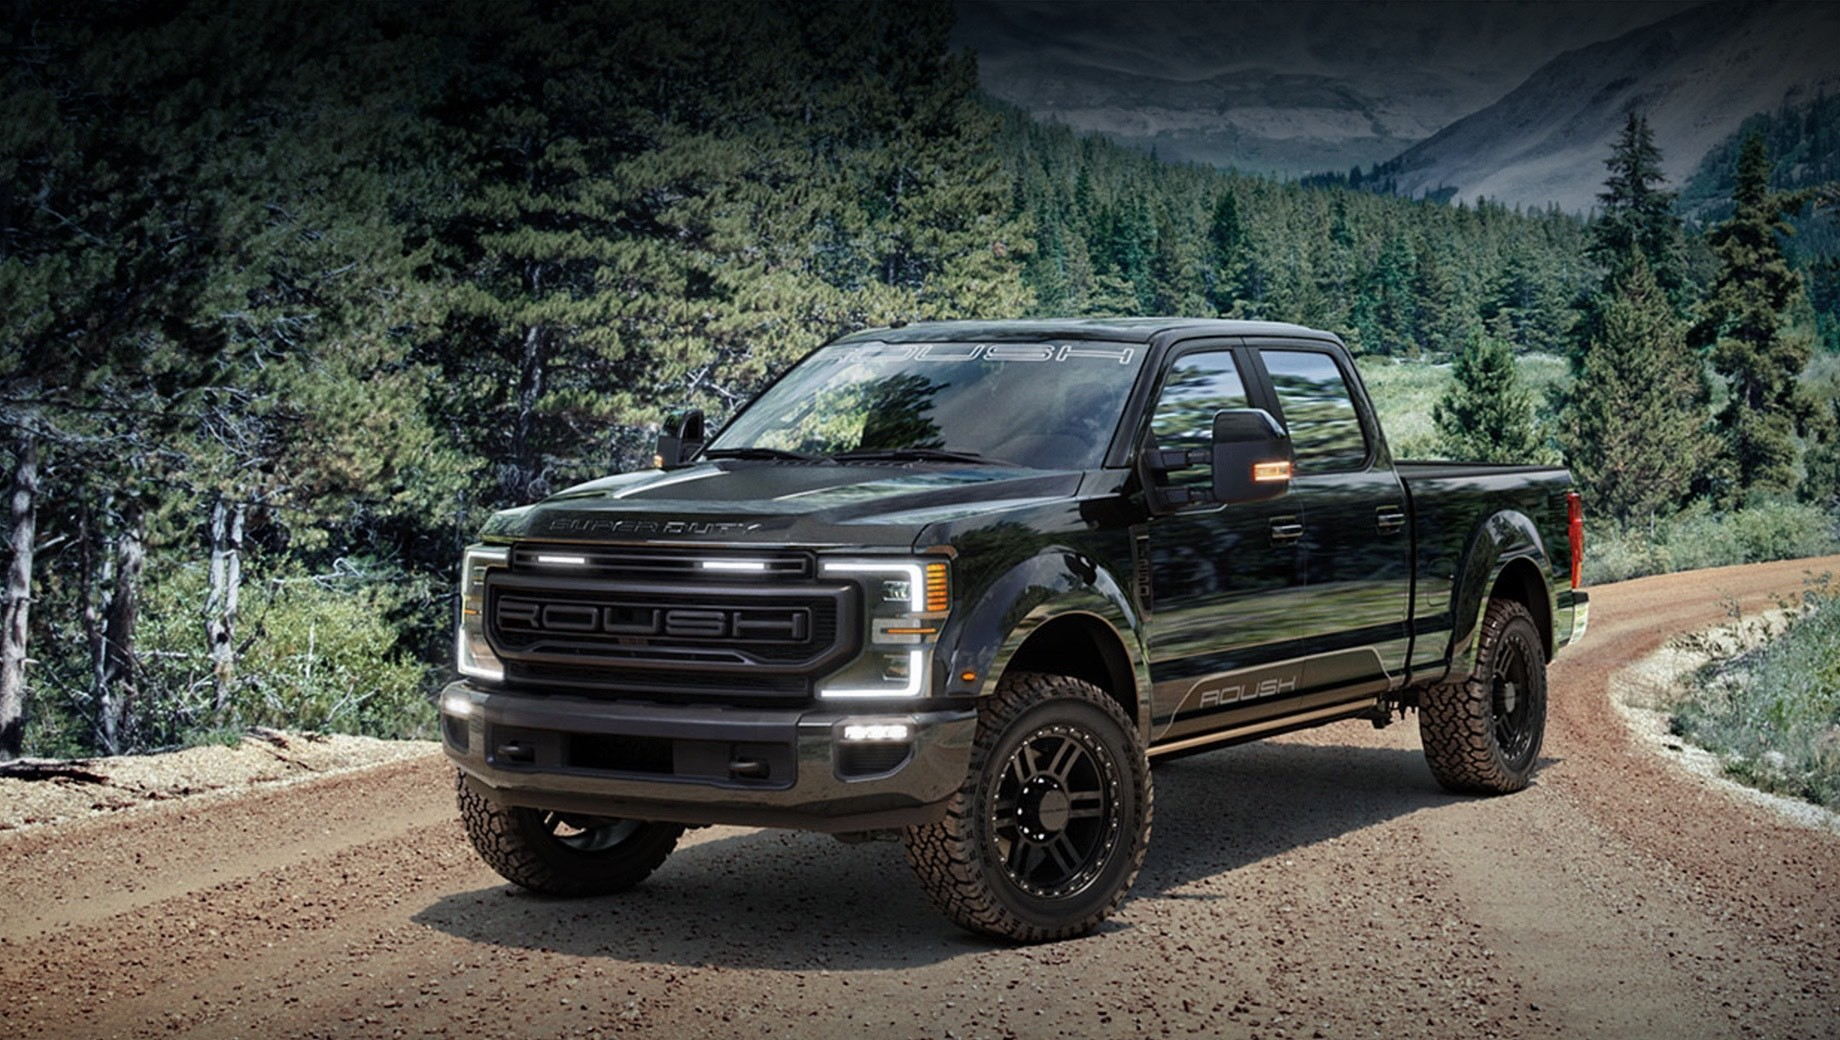 Roush предложил кит для пикапов Ford Super Duty